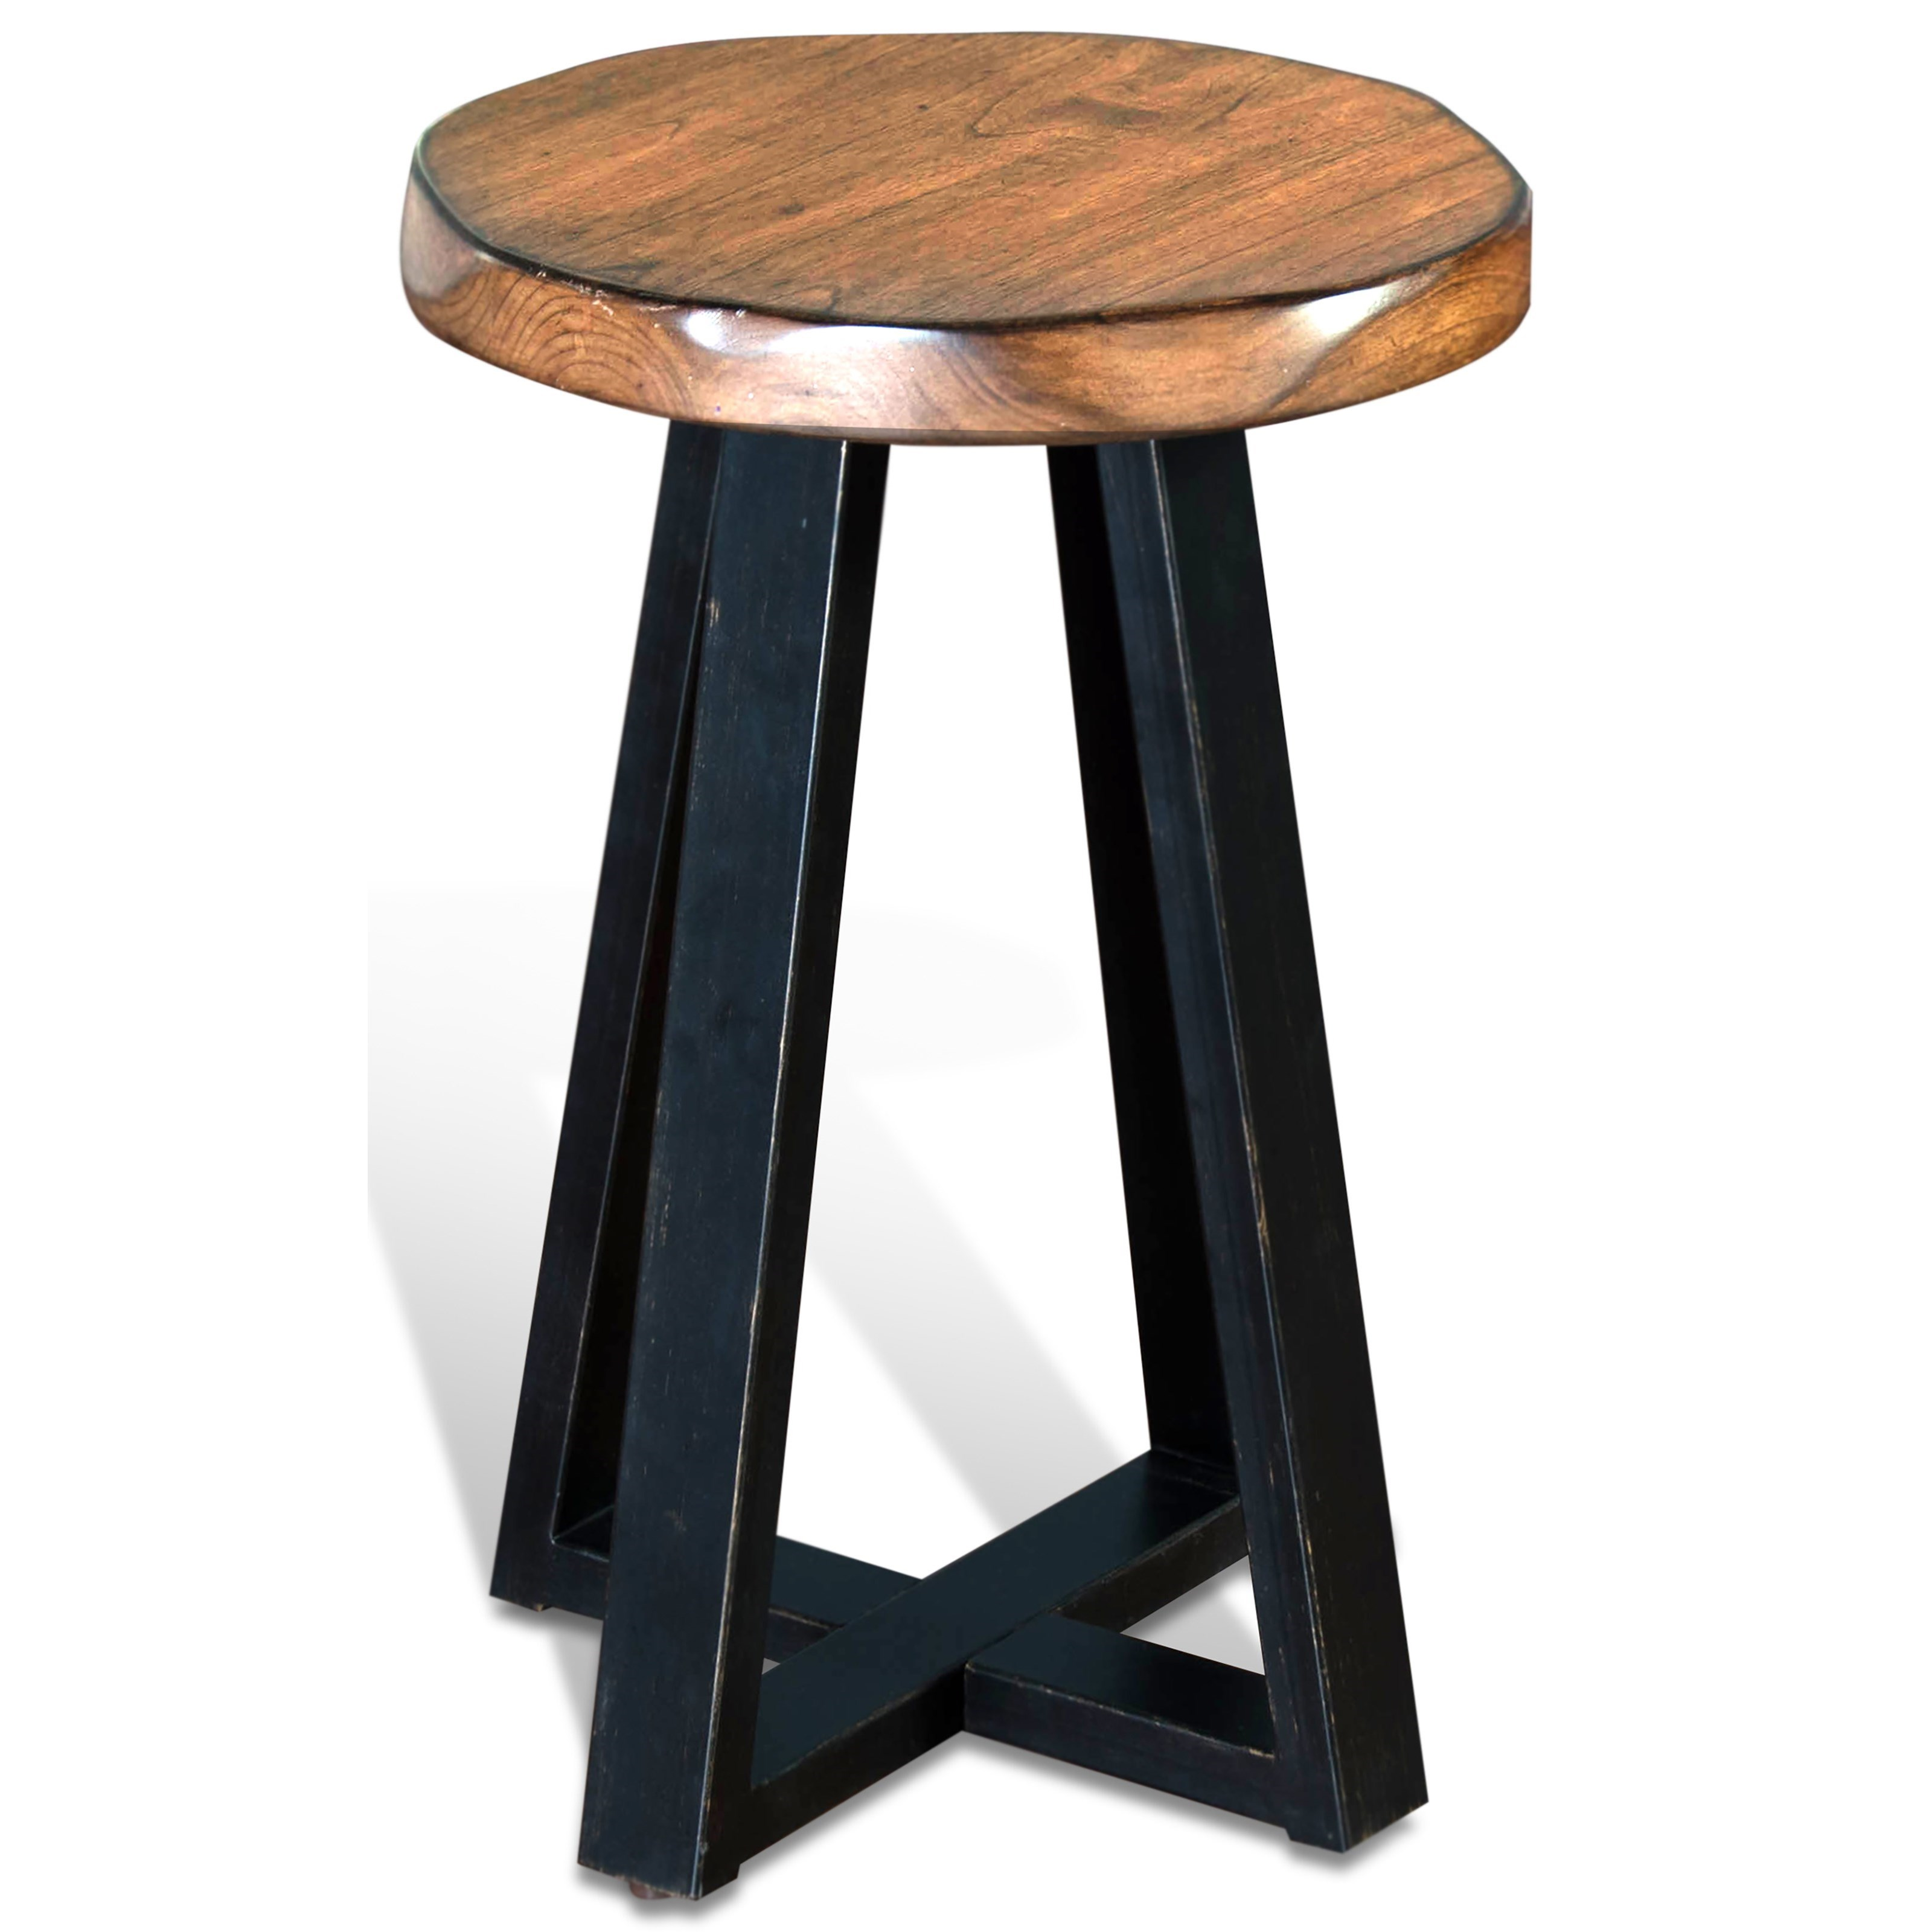 Sunny Designs Cresent Hill Live Edge Etagere Round Table - Item Number: 3269NM-ER